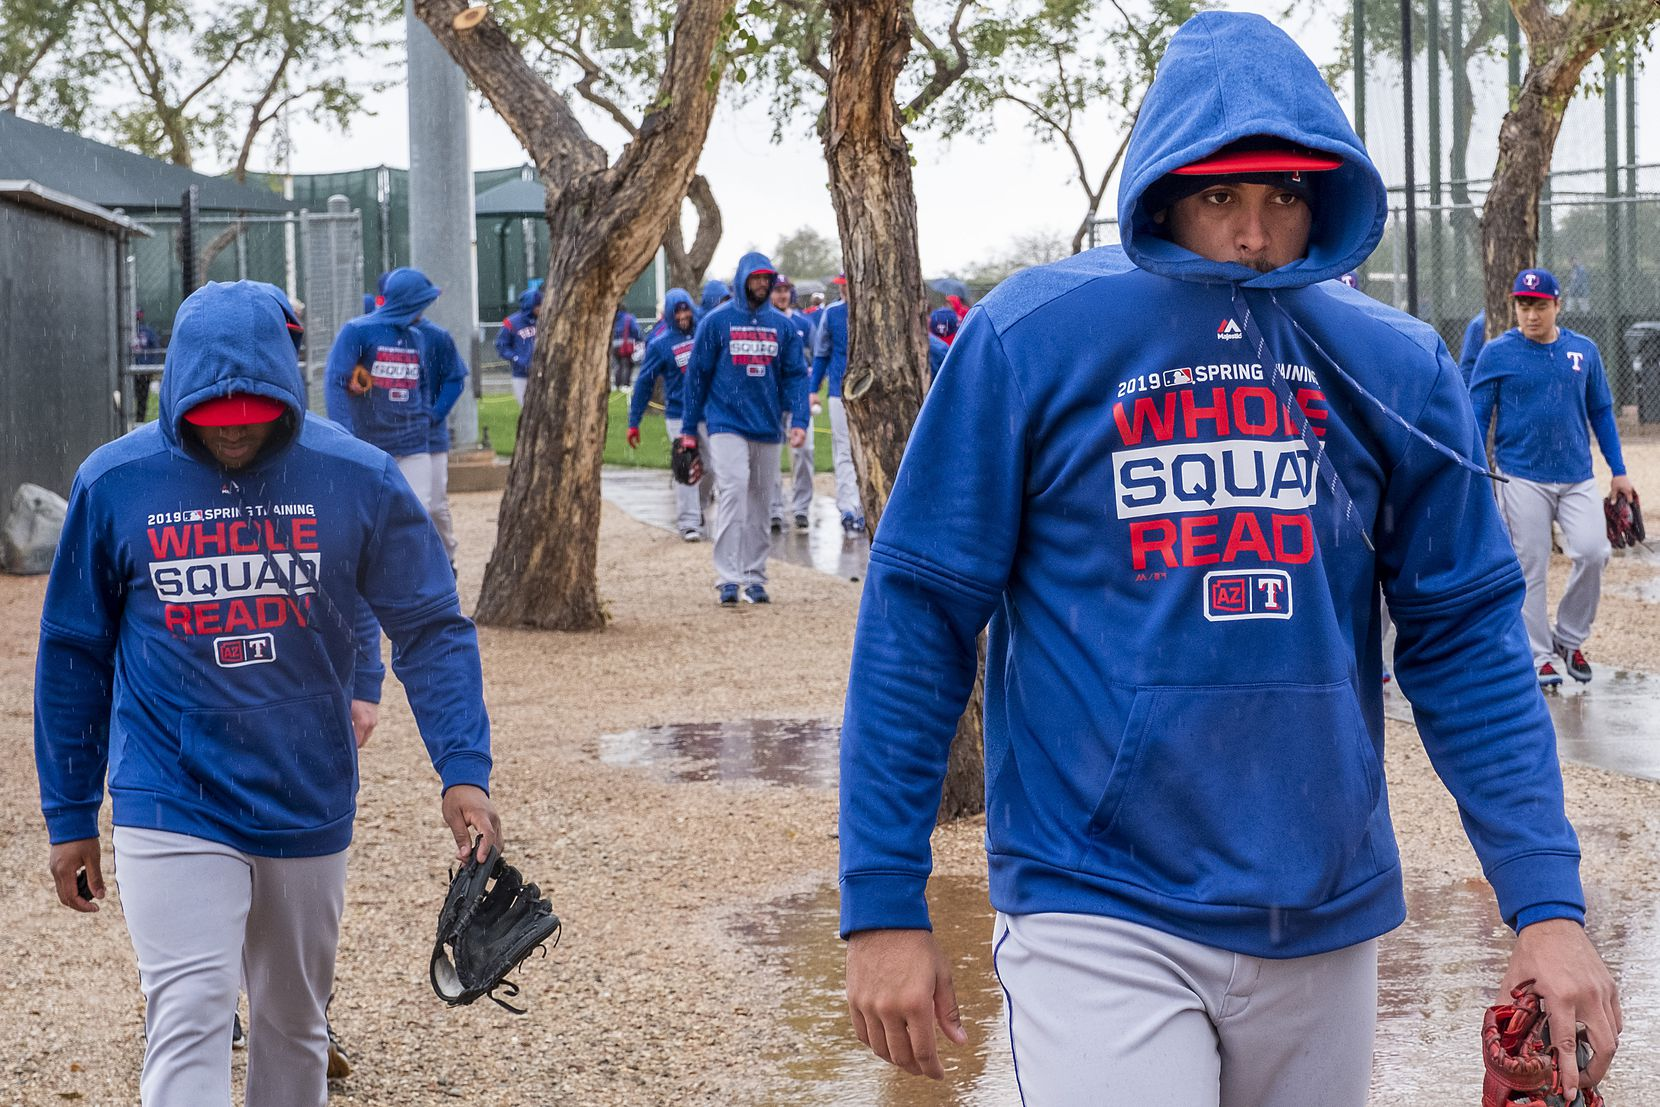 Texas Rangers infielder Ronald Guzman (right) bundles up against a cold rain while walking between practice fields on Feb. 22 at the club's spring training facility in Surprise, Ariz..